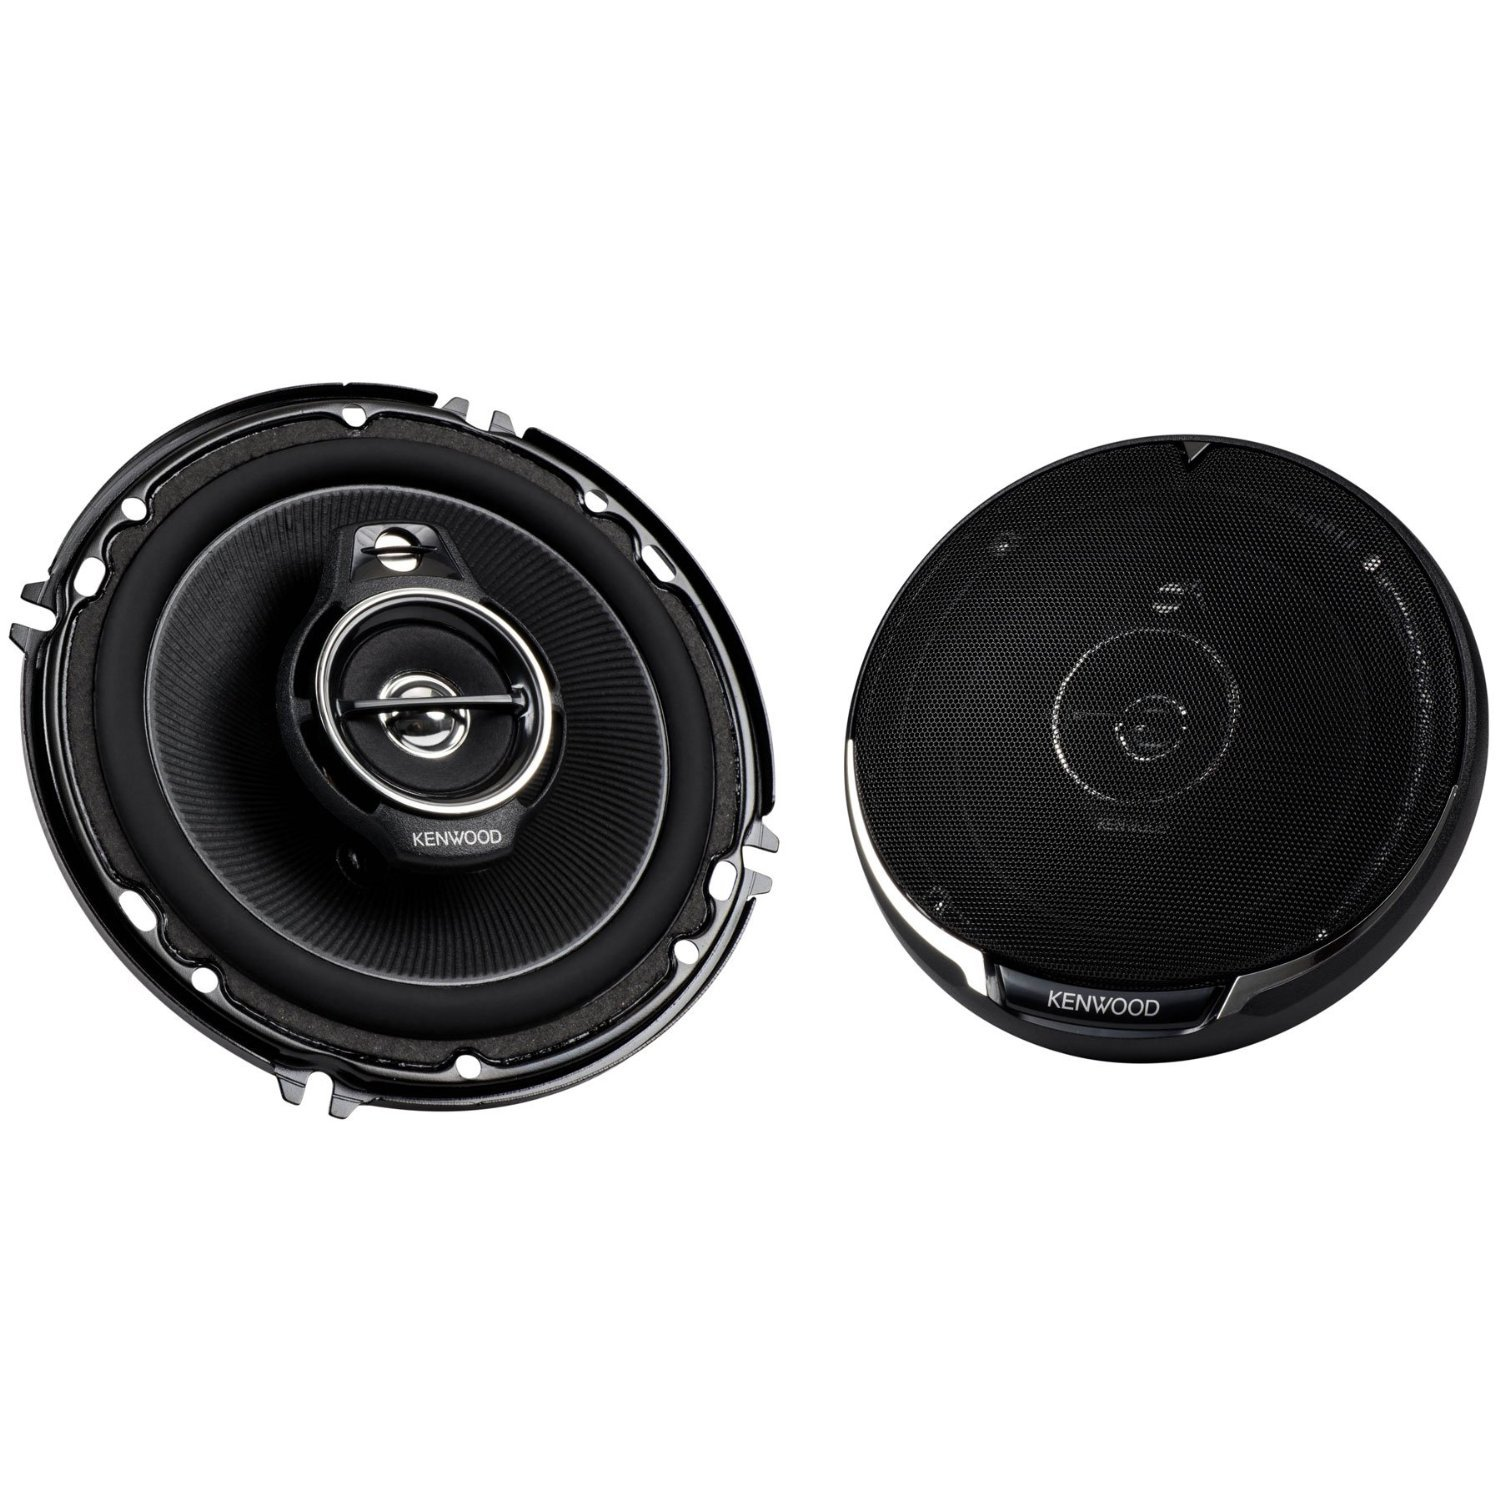 "Kenwood KFC-1695PS 320W 6.5"" 3-Way Performance Series Flush Mount Coaxial Speakers with Paper Cone Tweeters, Set of 2"